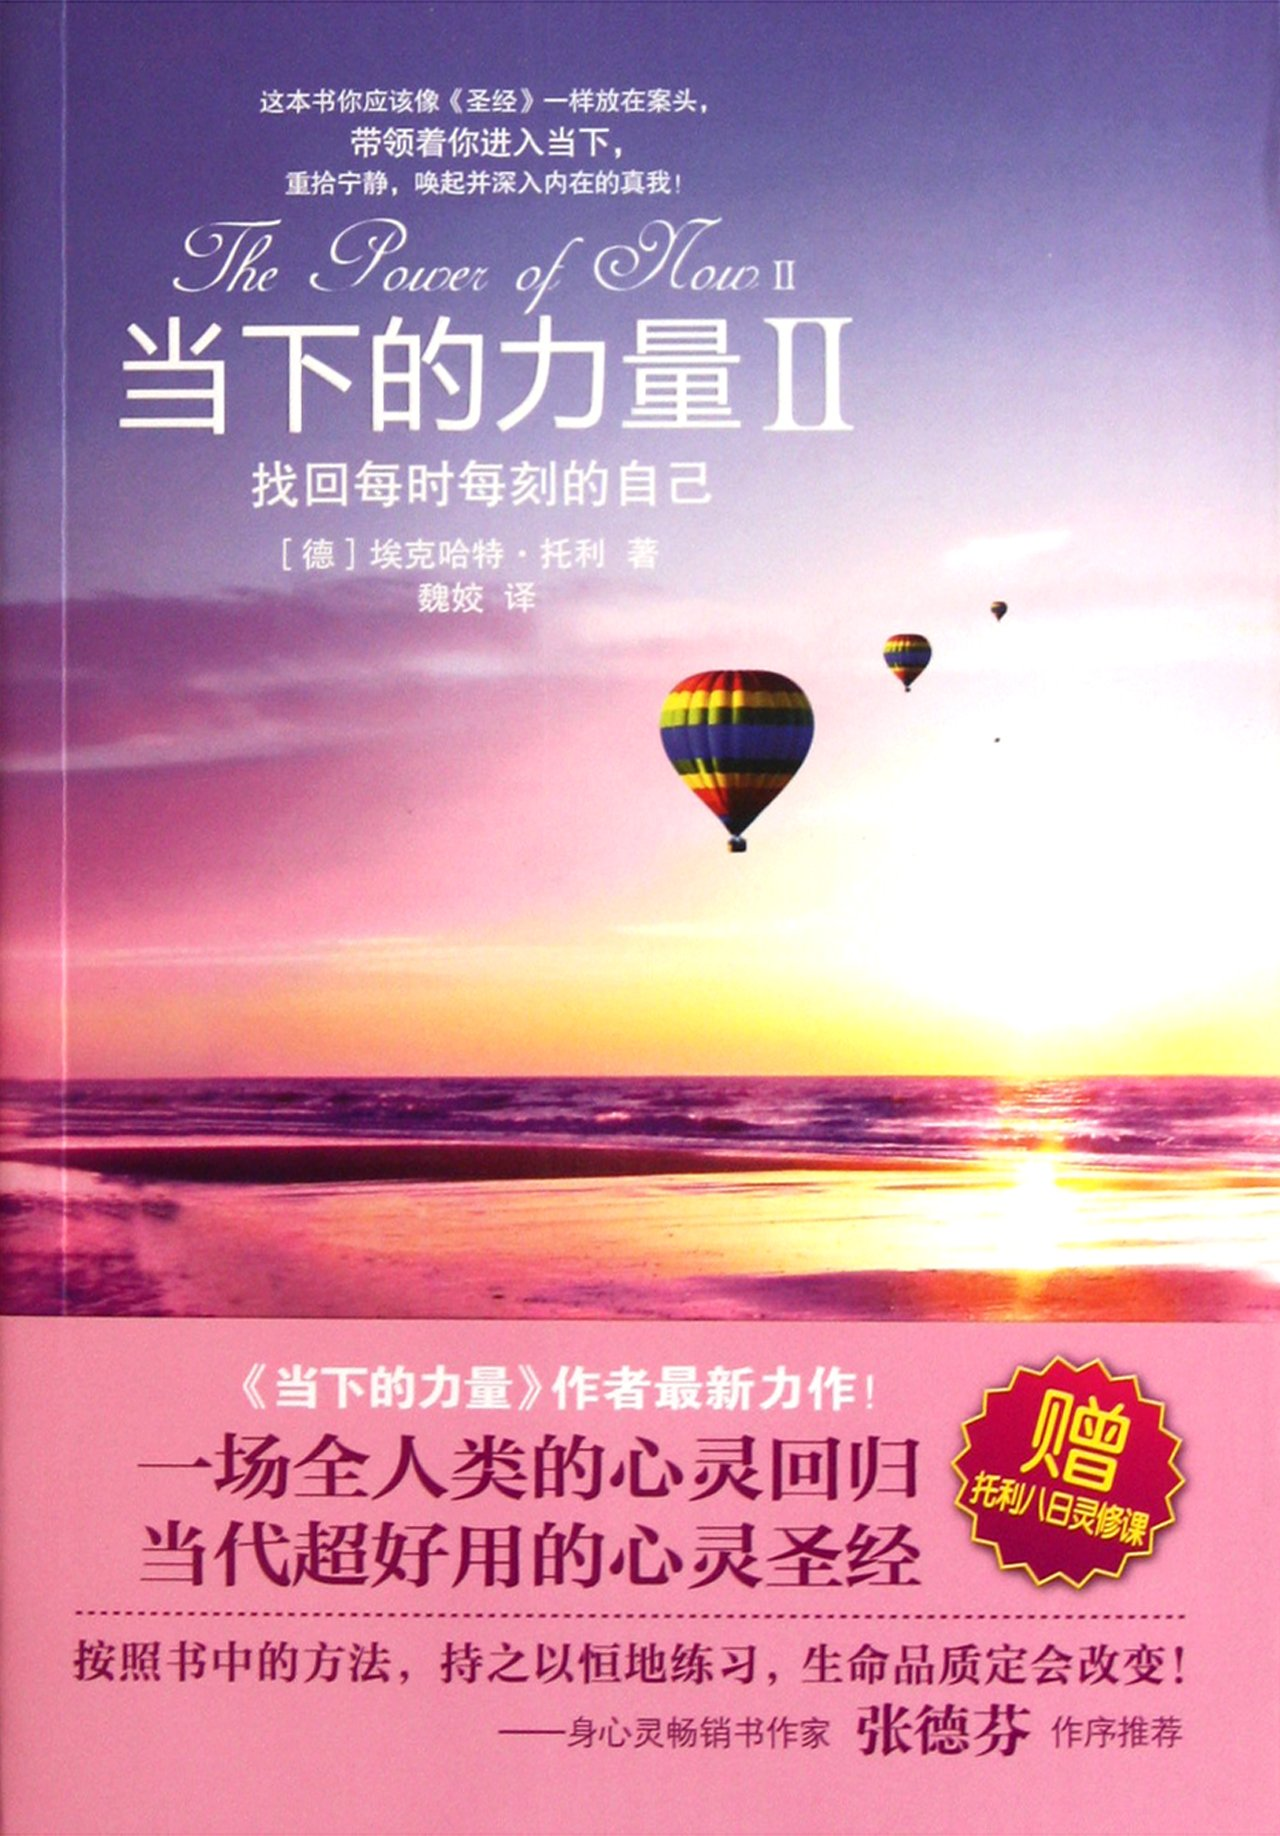 Download The Power of the Present: be yourself at all times (II) (Chinese Edition) PDF